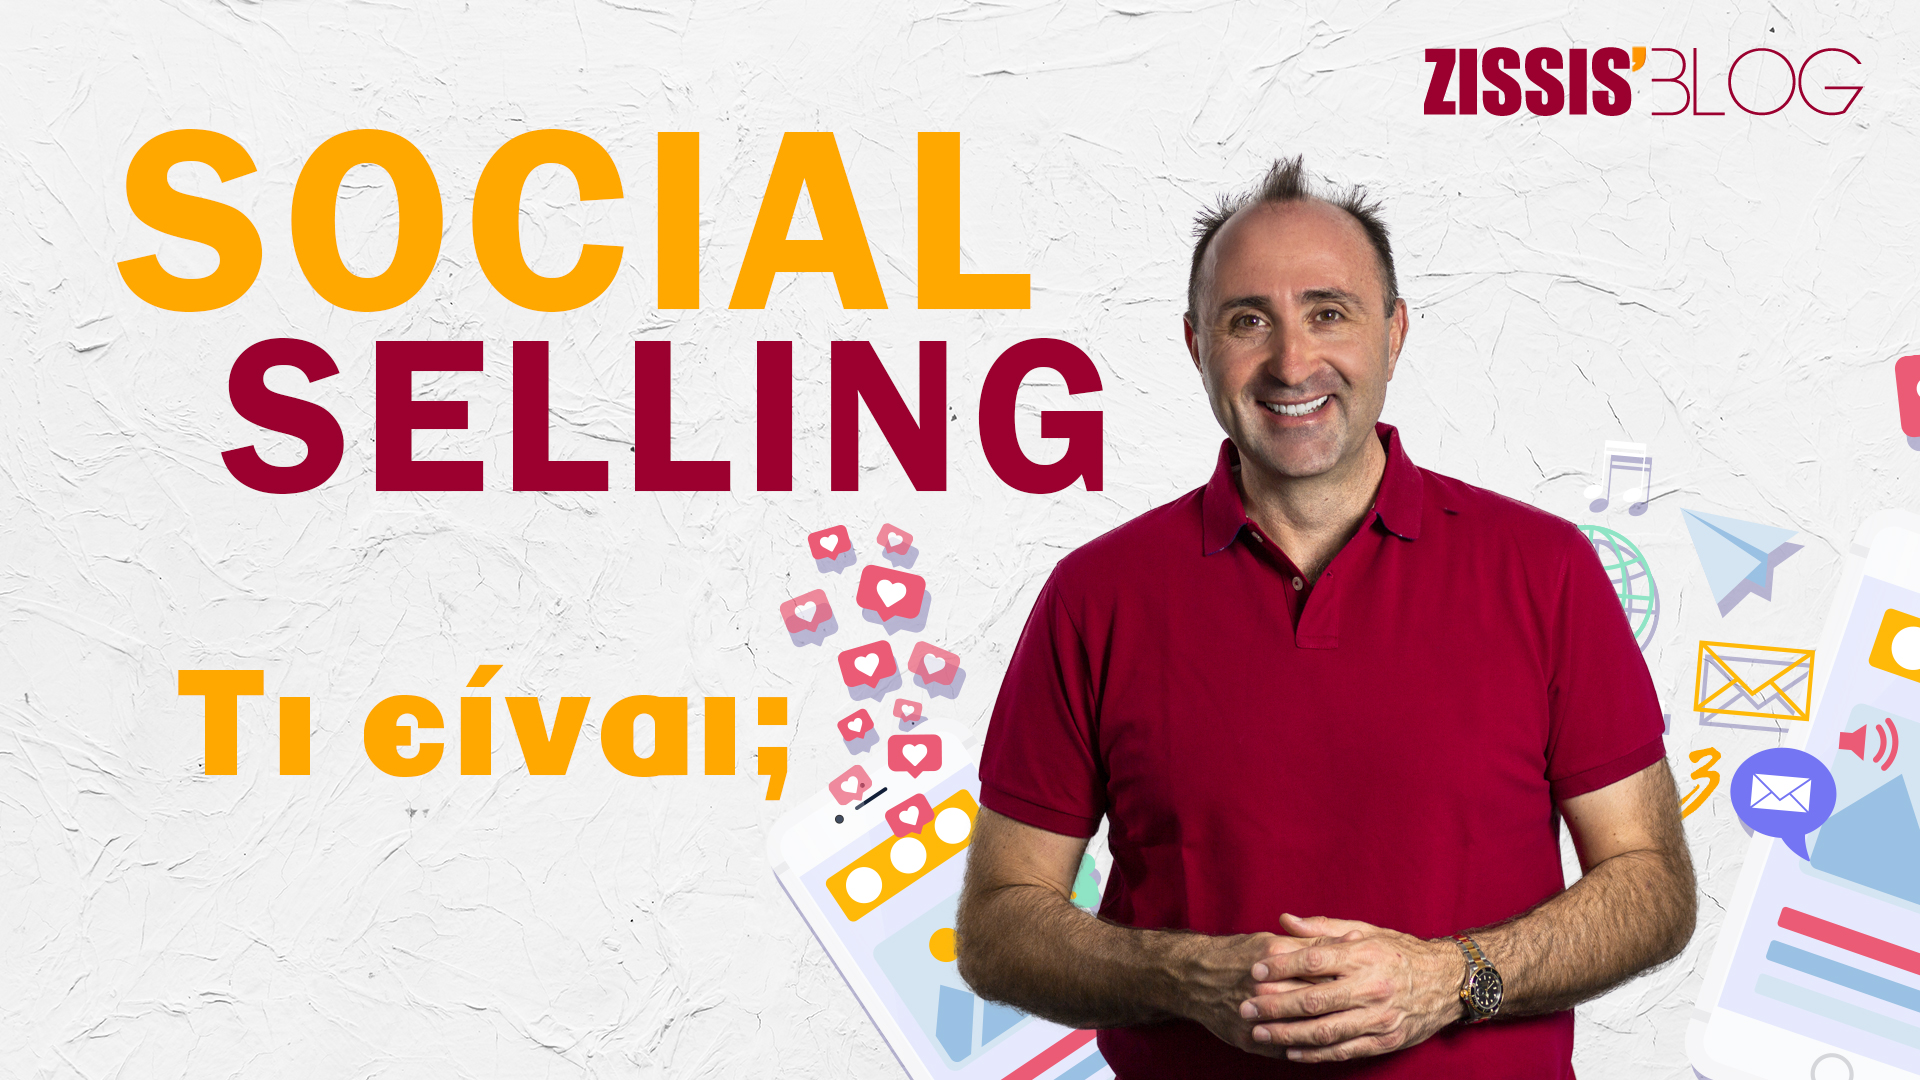 social selling article cover photo